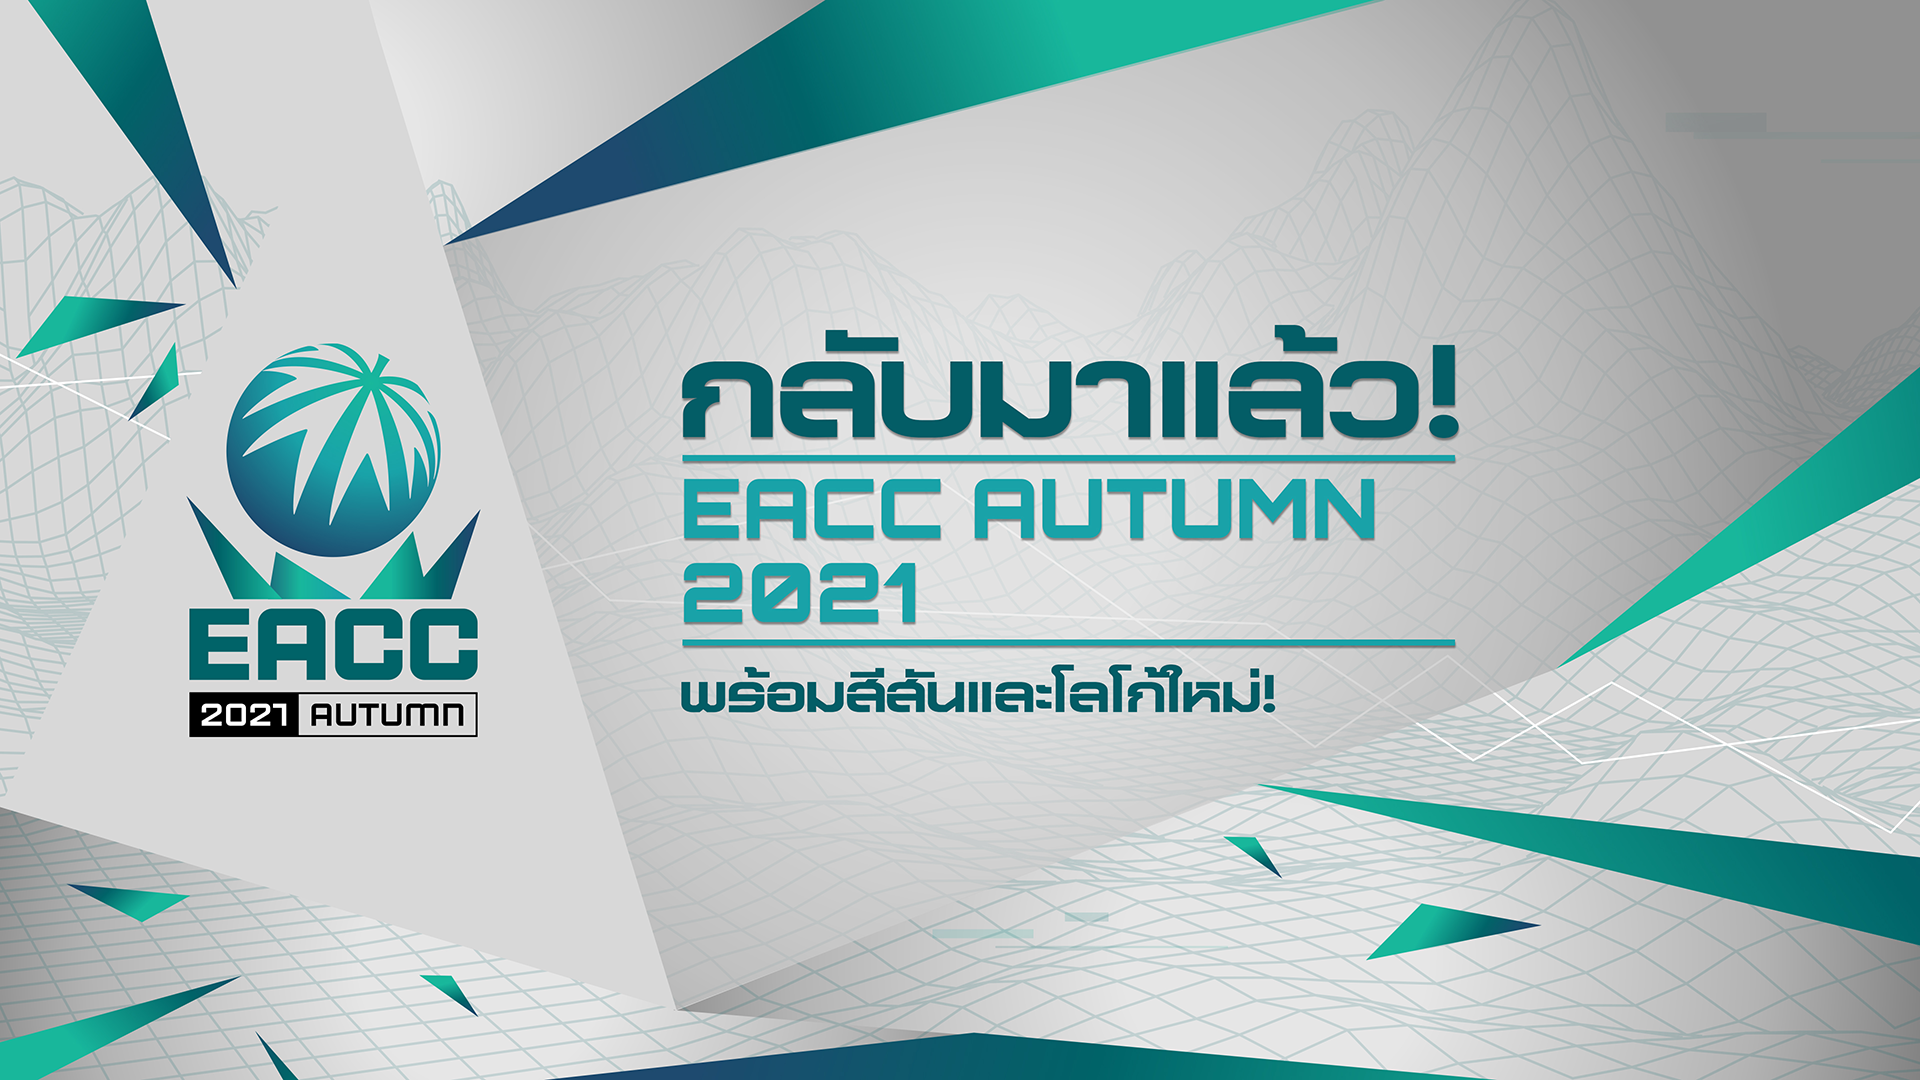 SGM EACC AUTUMN 2021 ซอร์ทเกมมิ่ง Sortgaming (3)